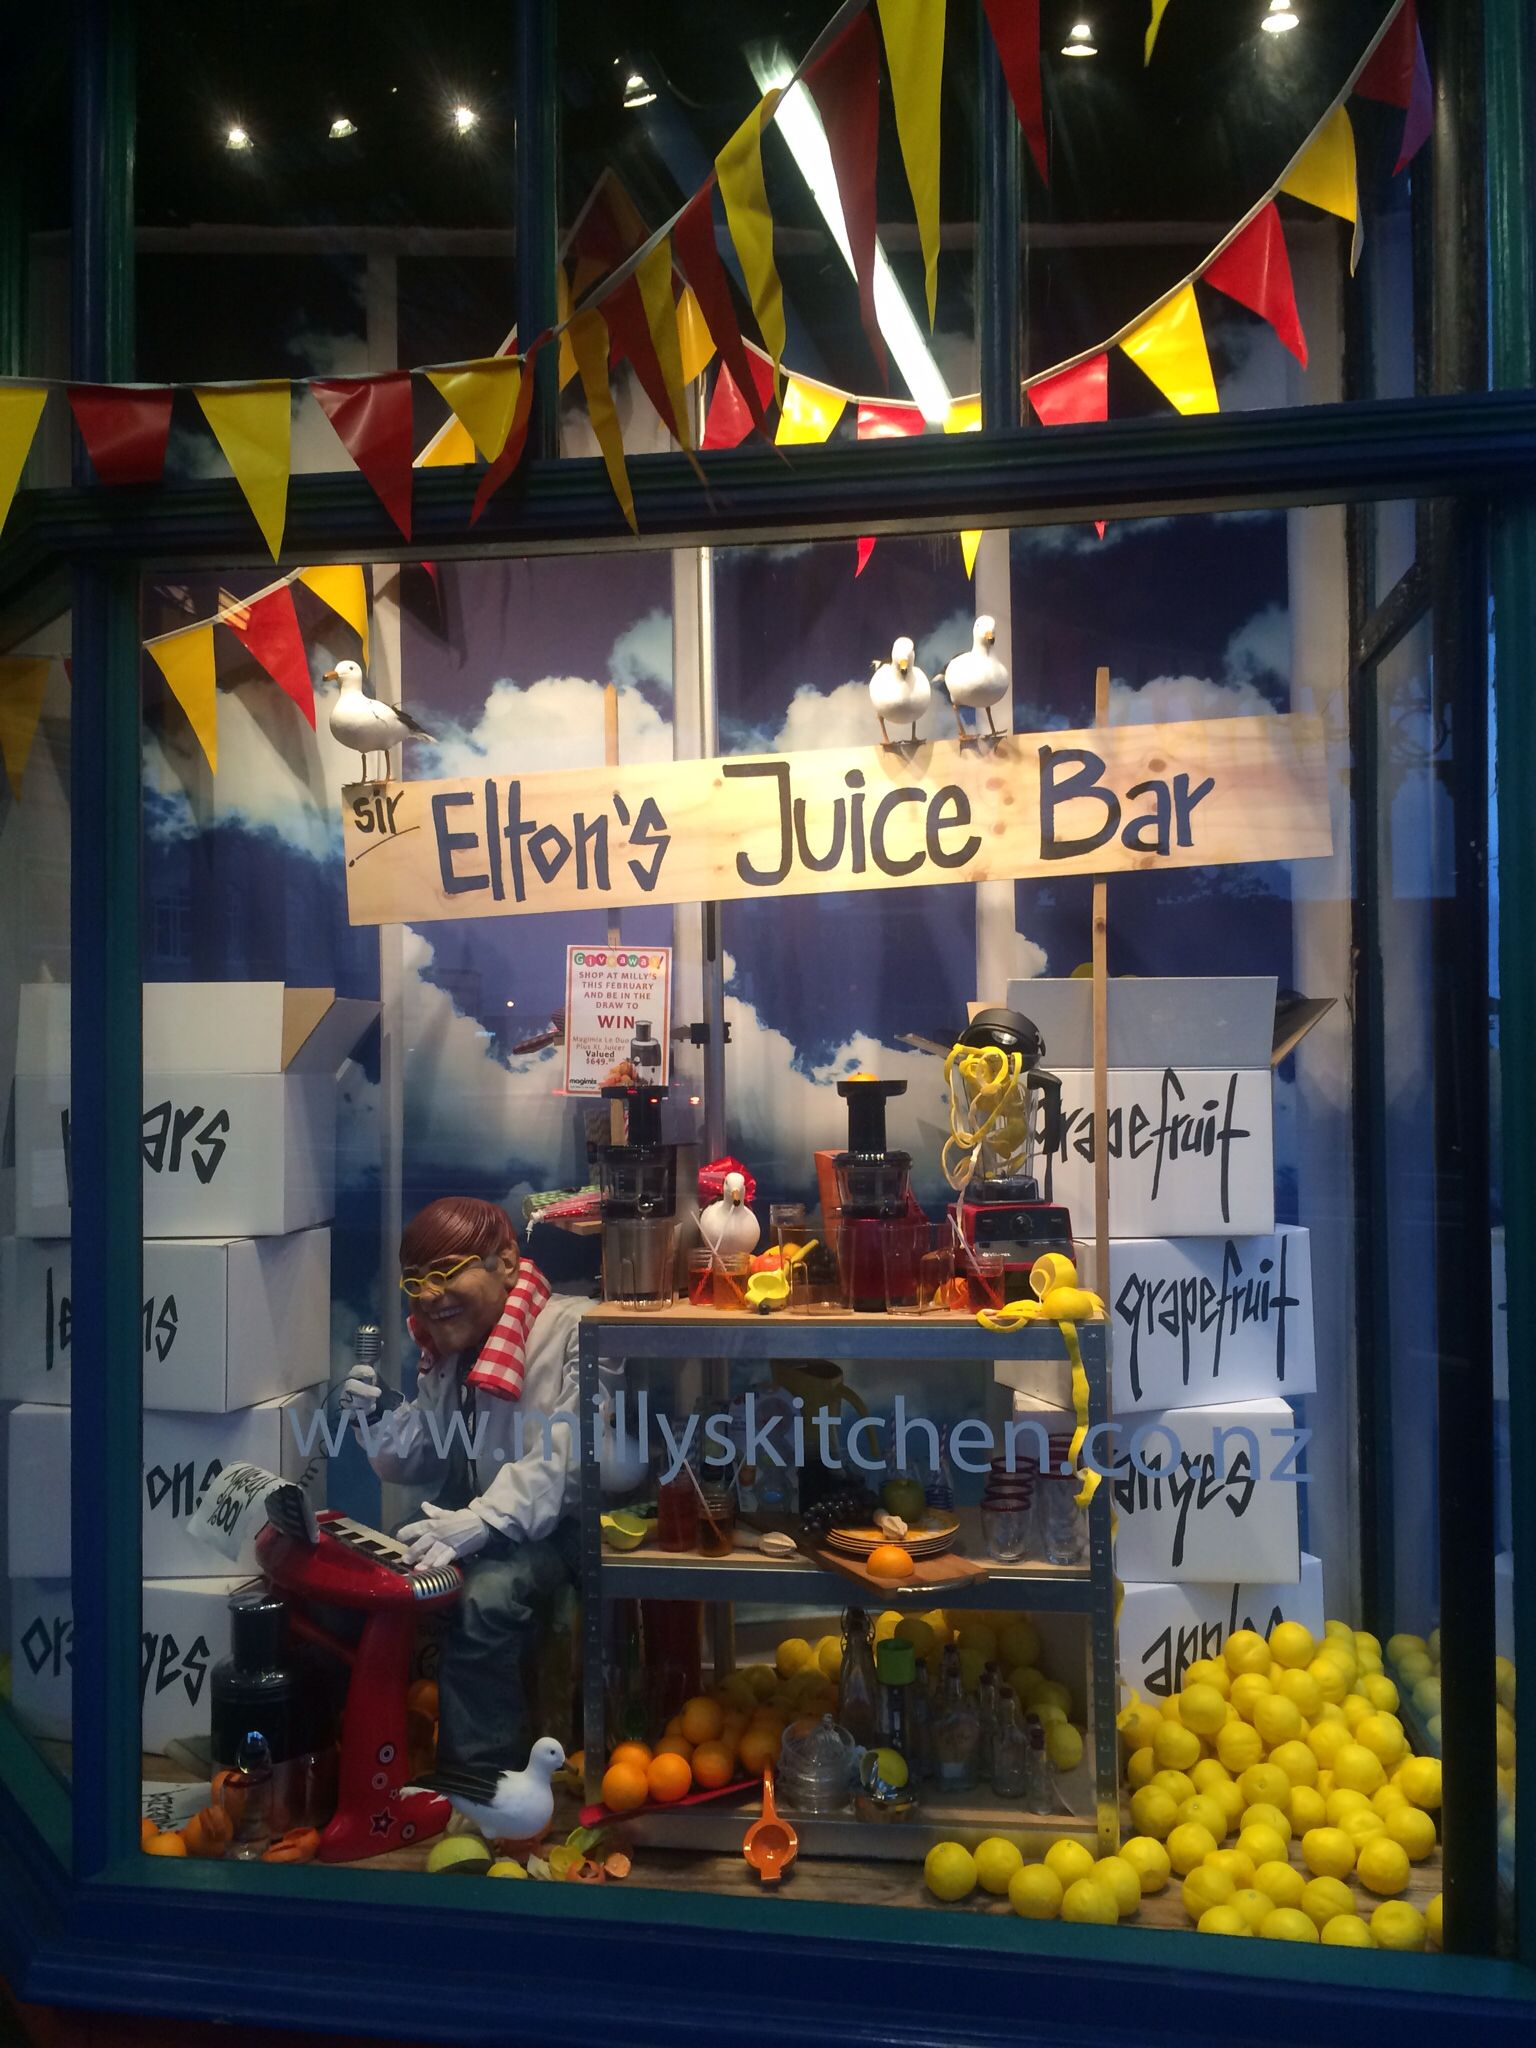 Window display ideas  sir eltonus juice bar created by ton van der veer   window